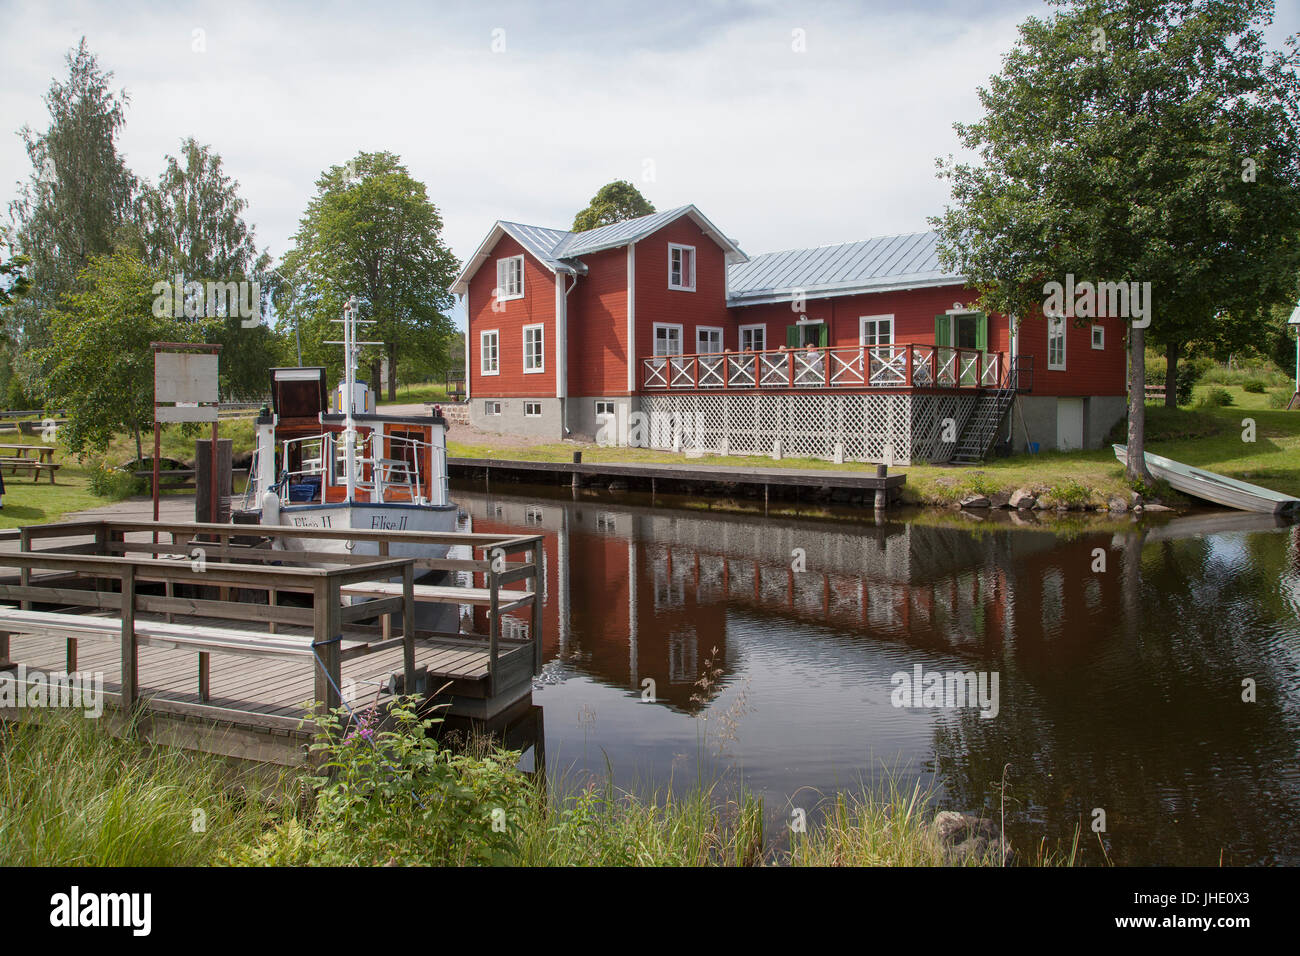 STJÄRNSUND industrial community in Dalarna 2017 Old boat at the Village pier - Stock Image